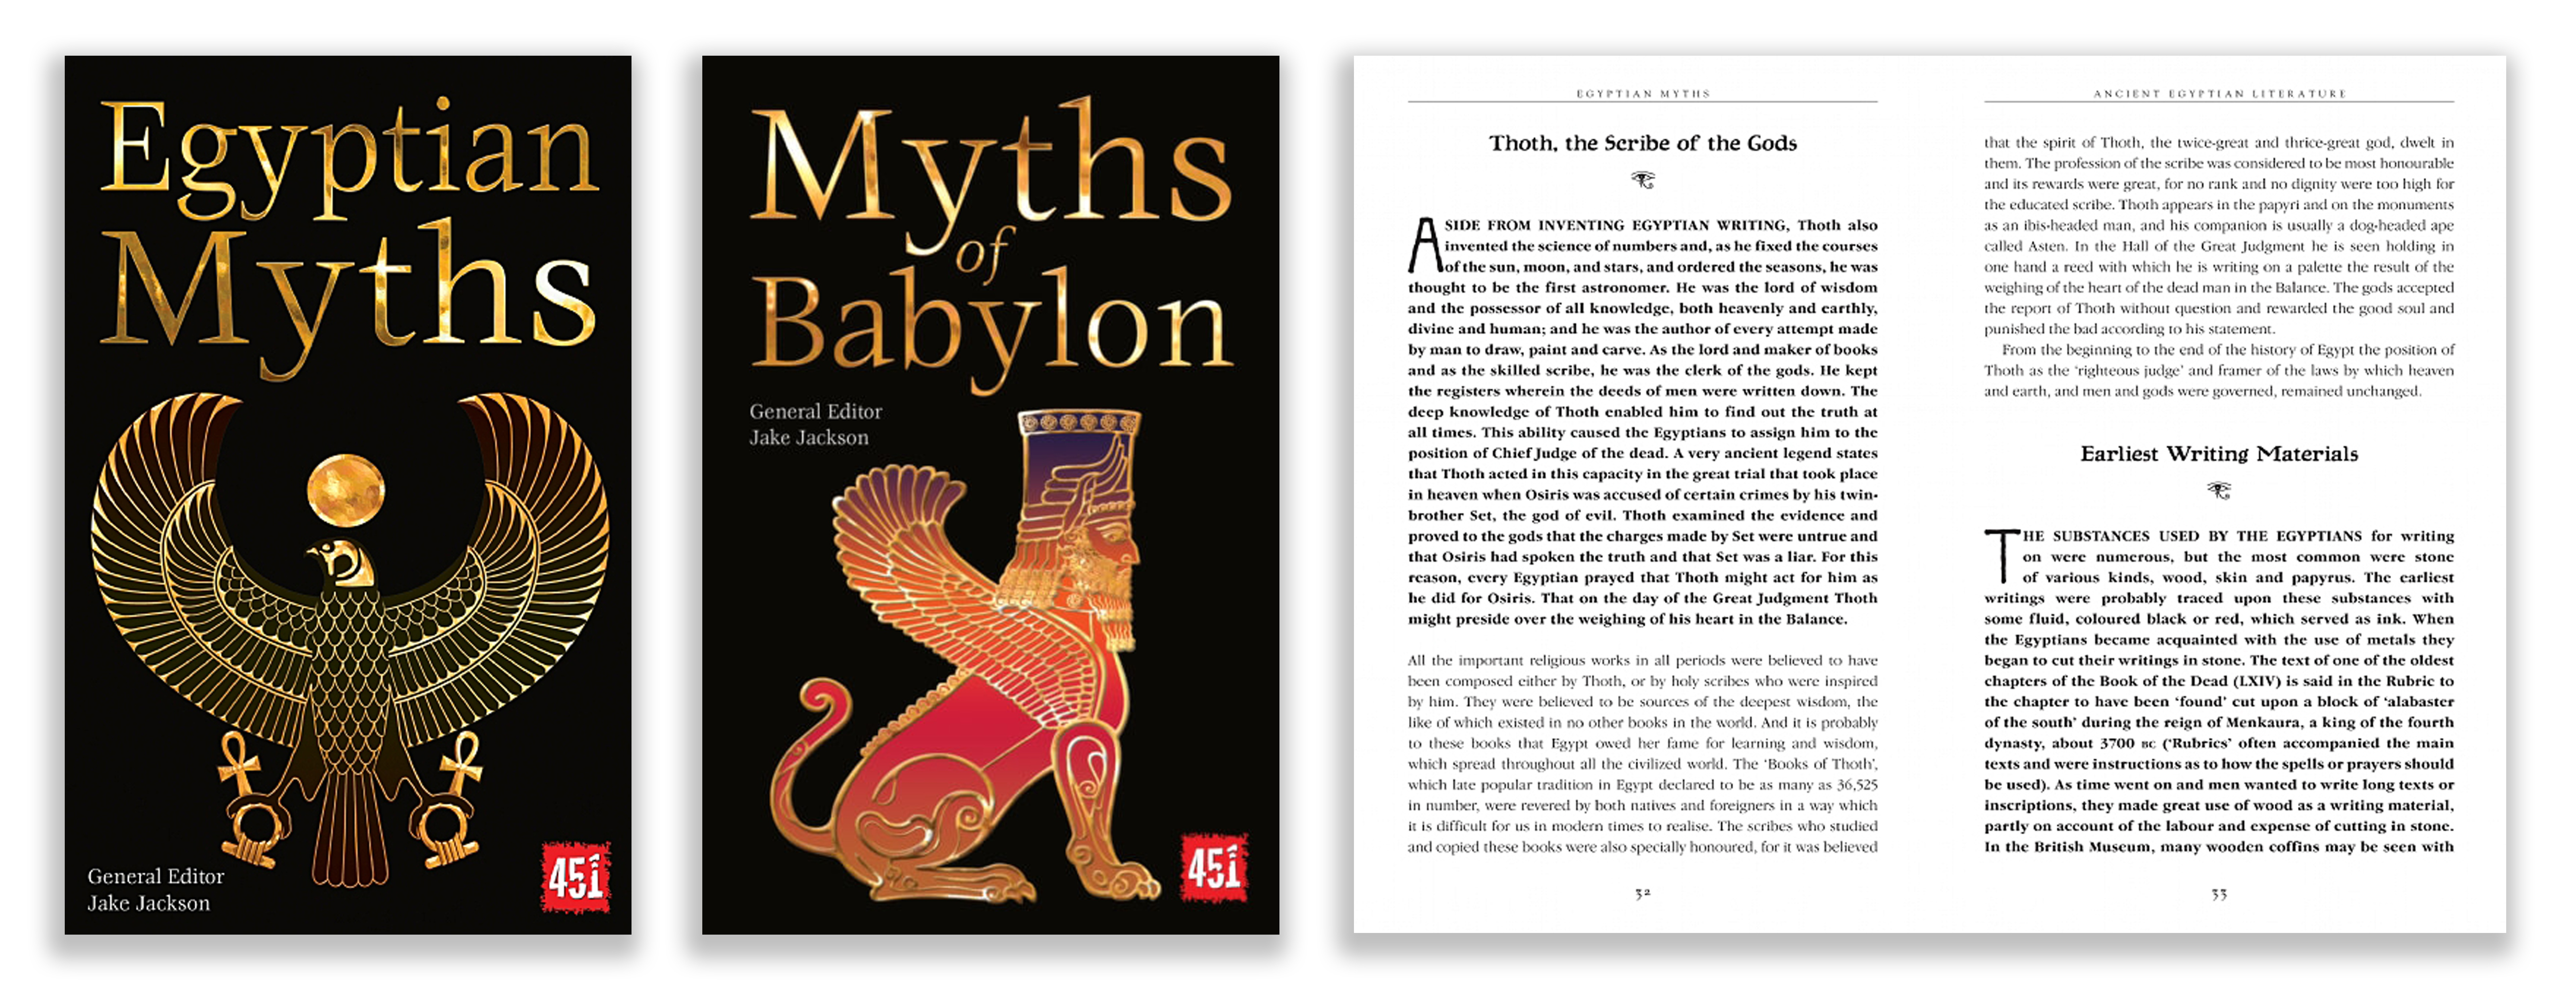 eygyptian myths-babylonian myths w- Spread